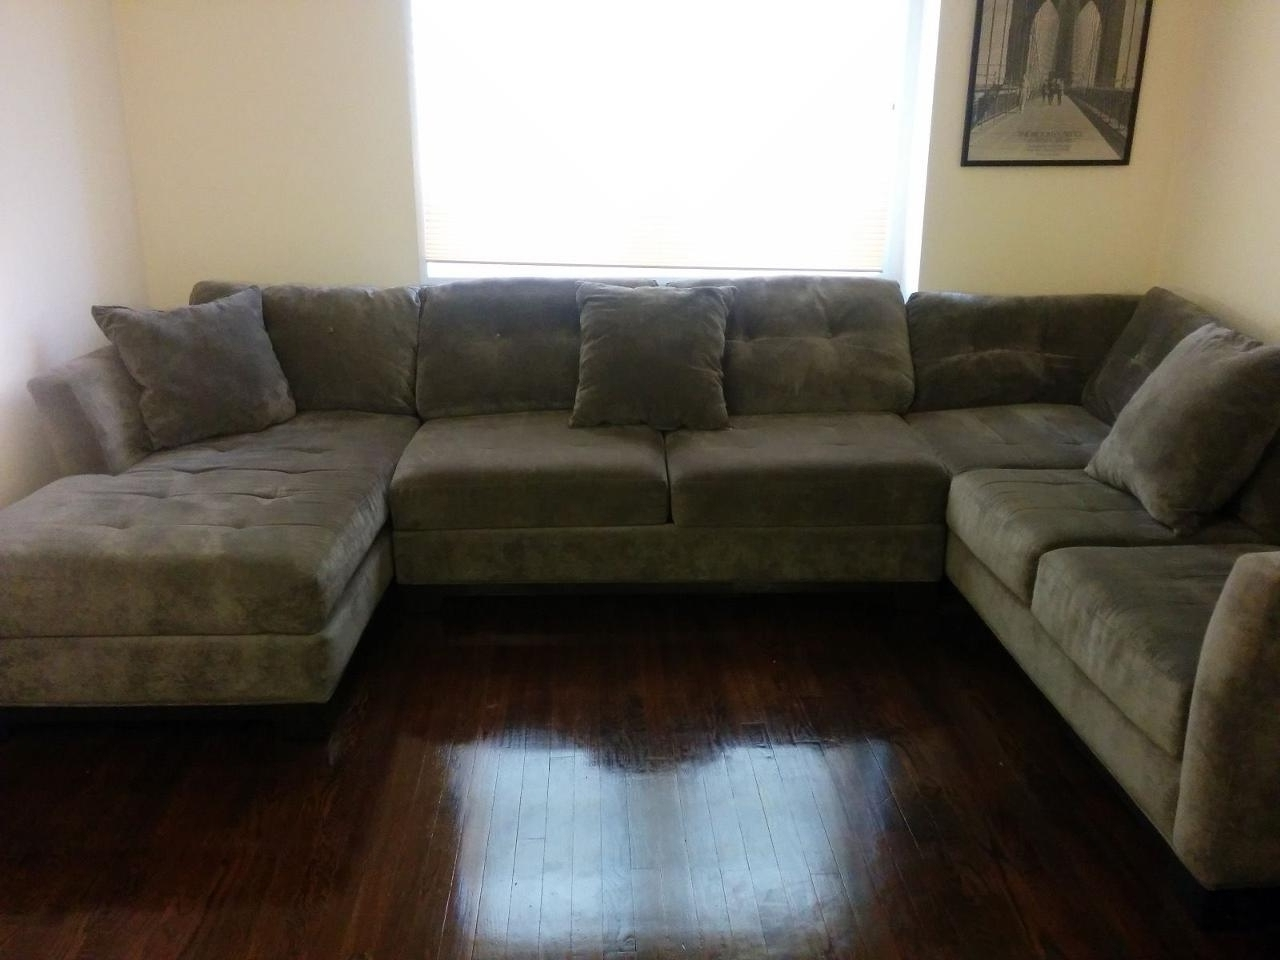 Elegant Elliot Sectional Sofa 3 Piece Chaise 67 For Mitchell Gold Intended For Newest 3 Piece Sectional Sofas With Chaise (Gallery 8 of 15)